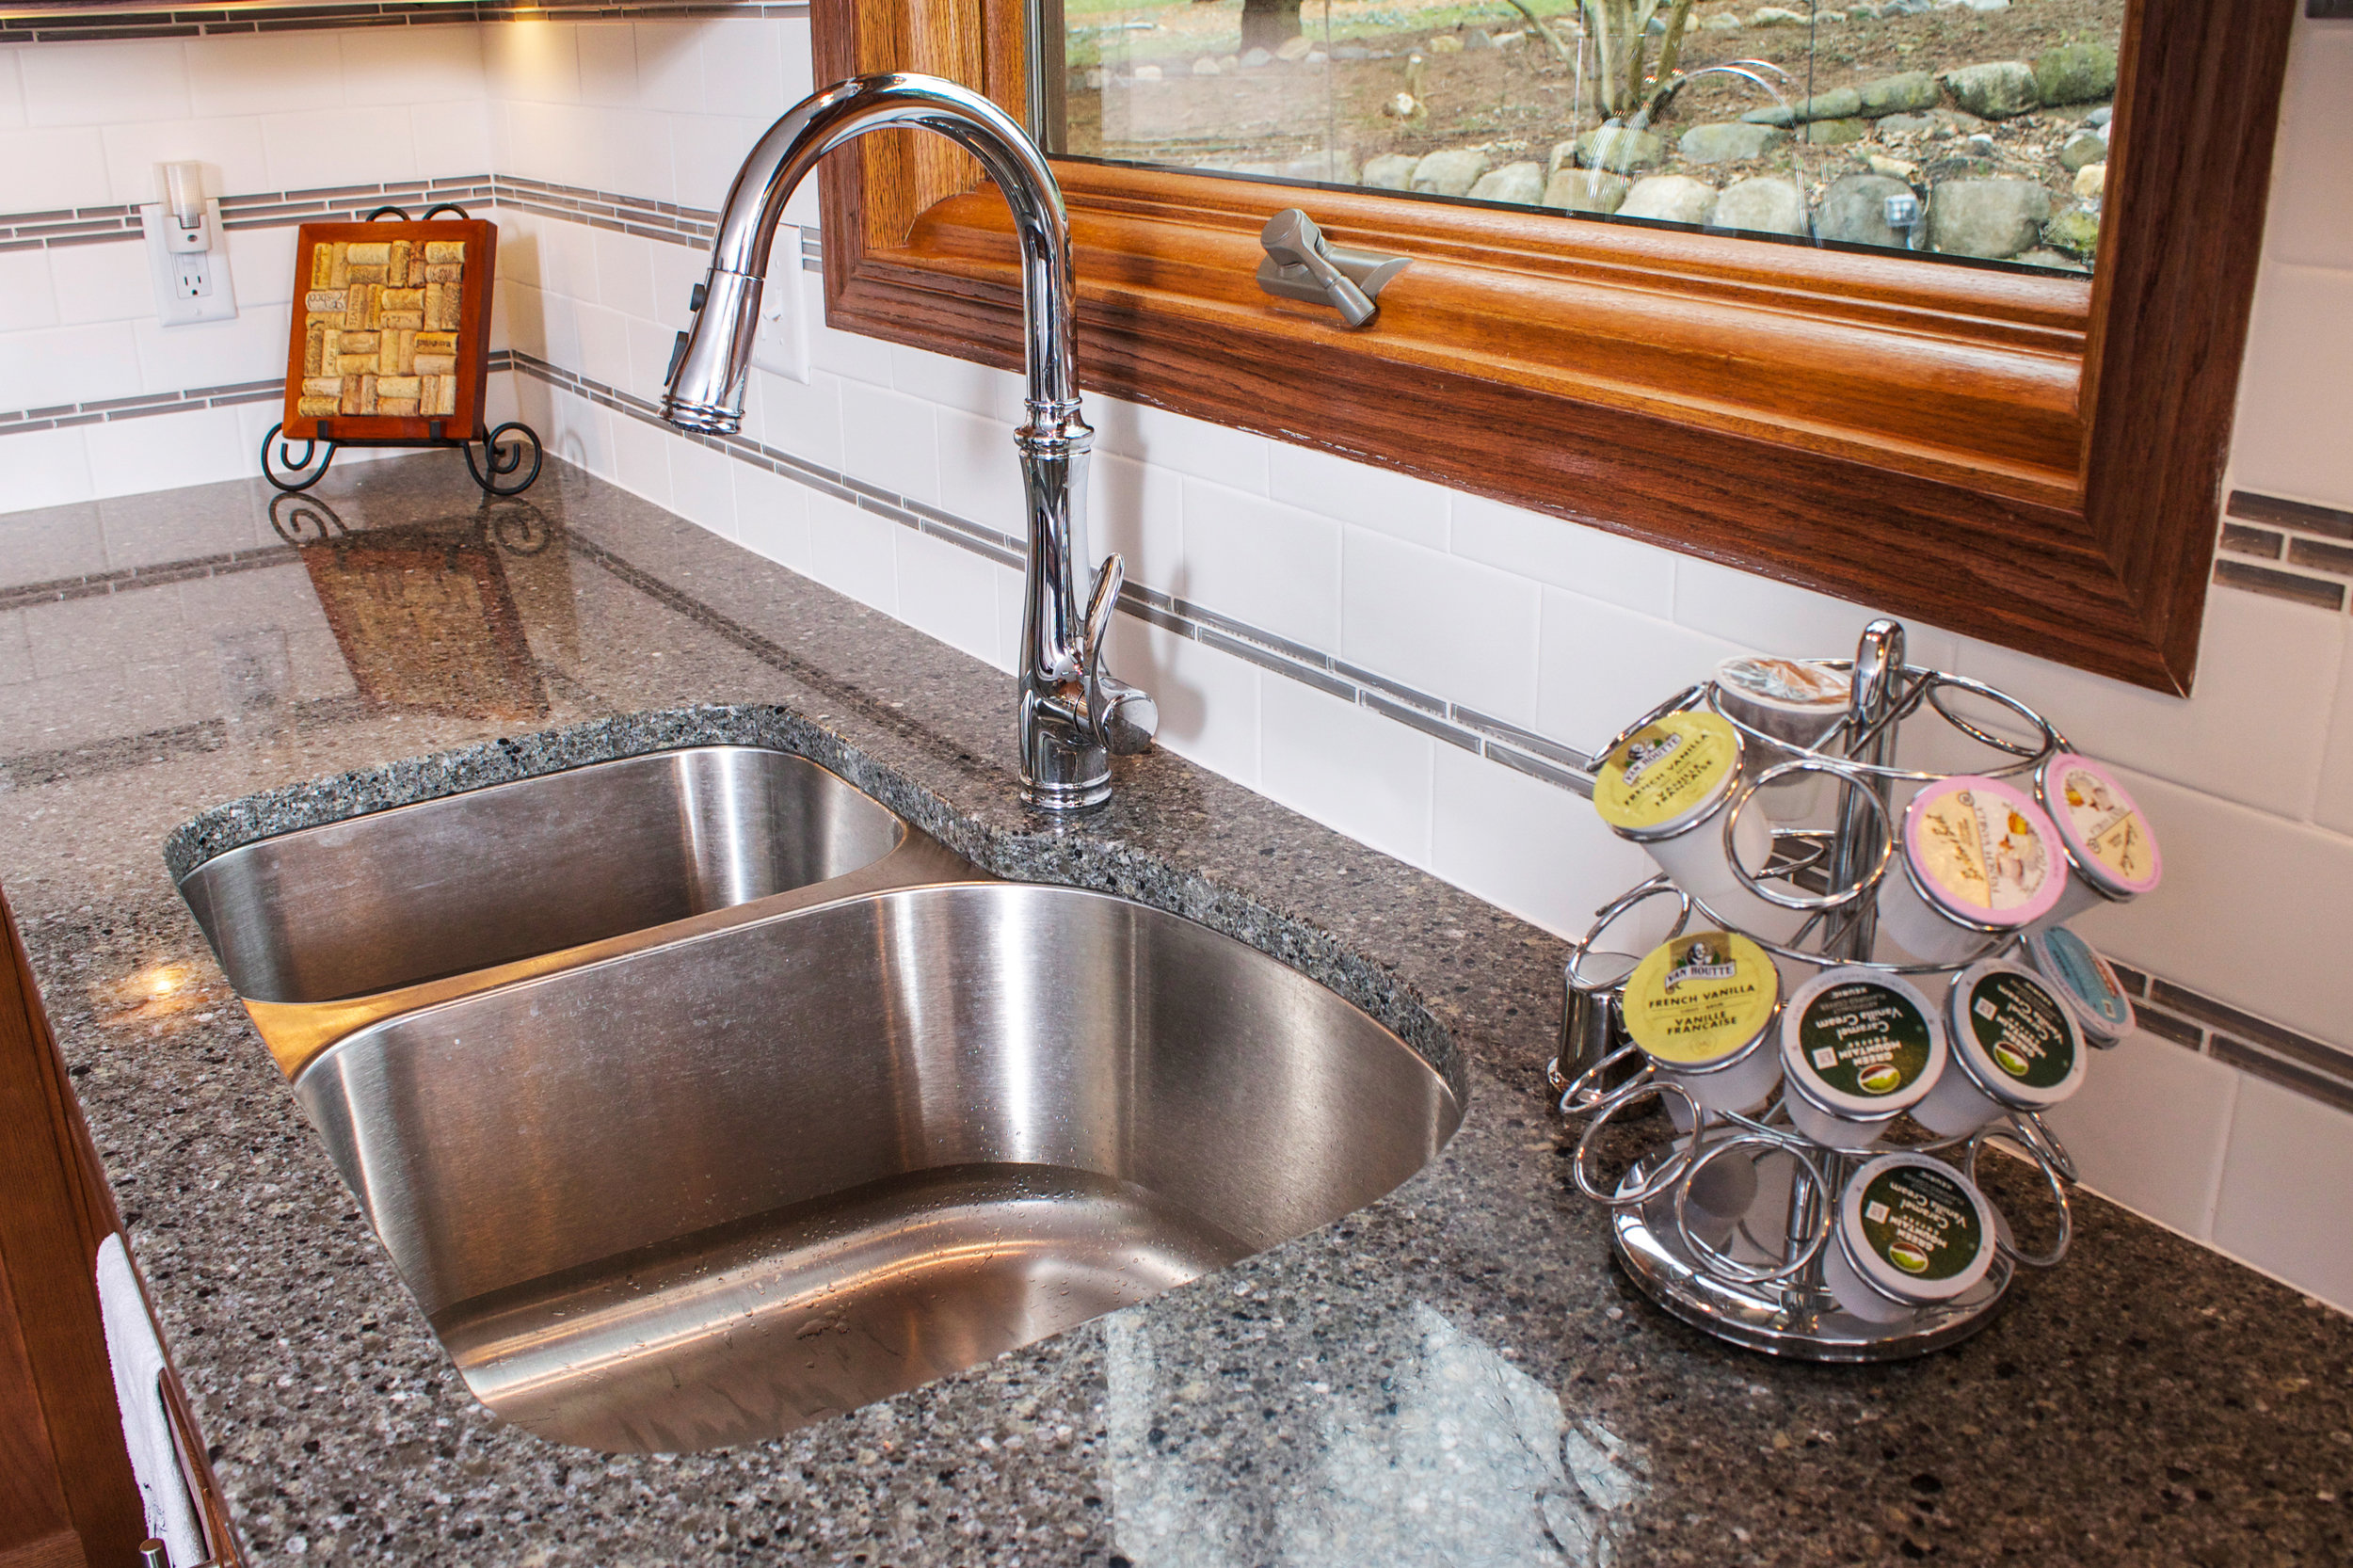 Chrome Kitchen Faucet With pull Down Sprayer and Granite Countertops